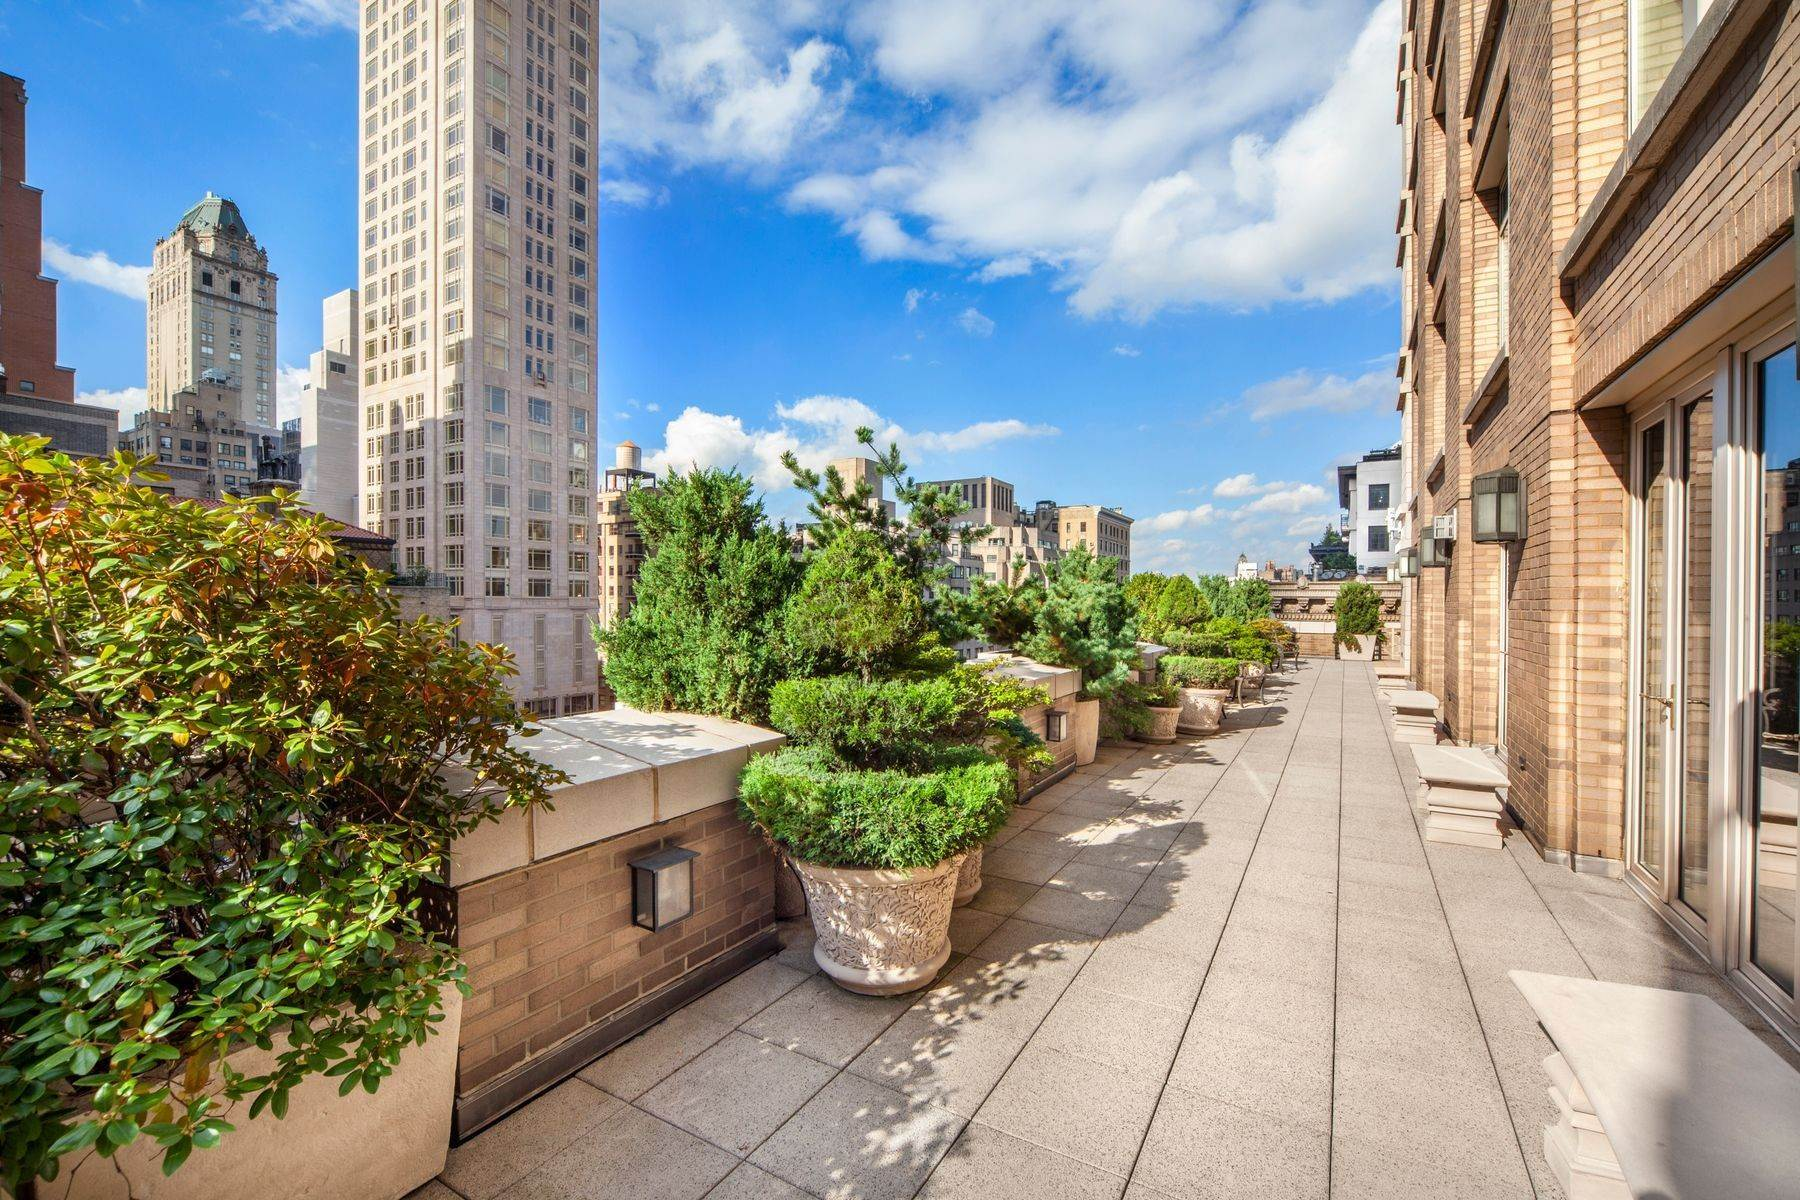 Condominiums للـ Sale في Spectacular Terraces on Park Avenue 515 Park Avenue, 15/16, New York, New York 10022 United States